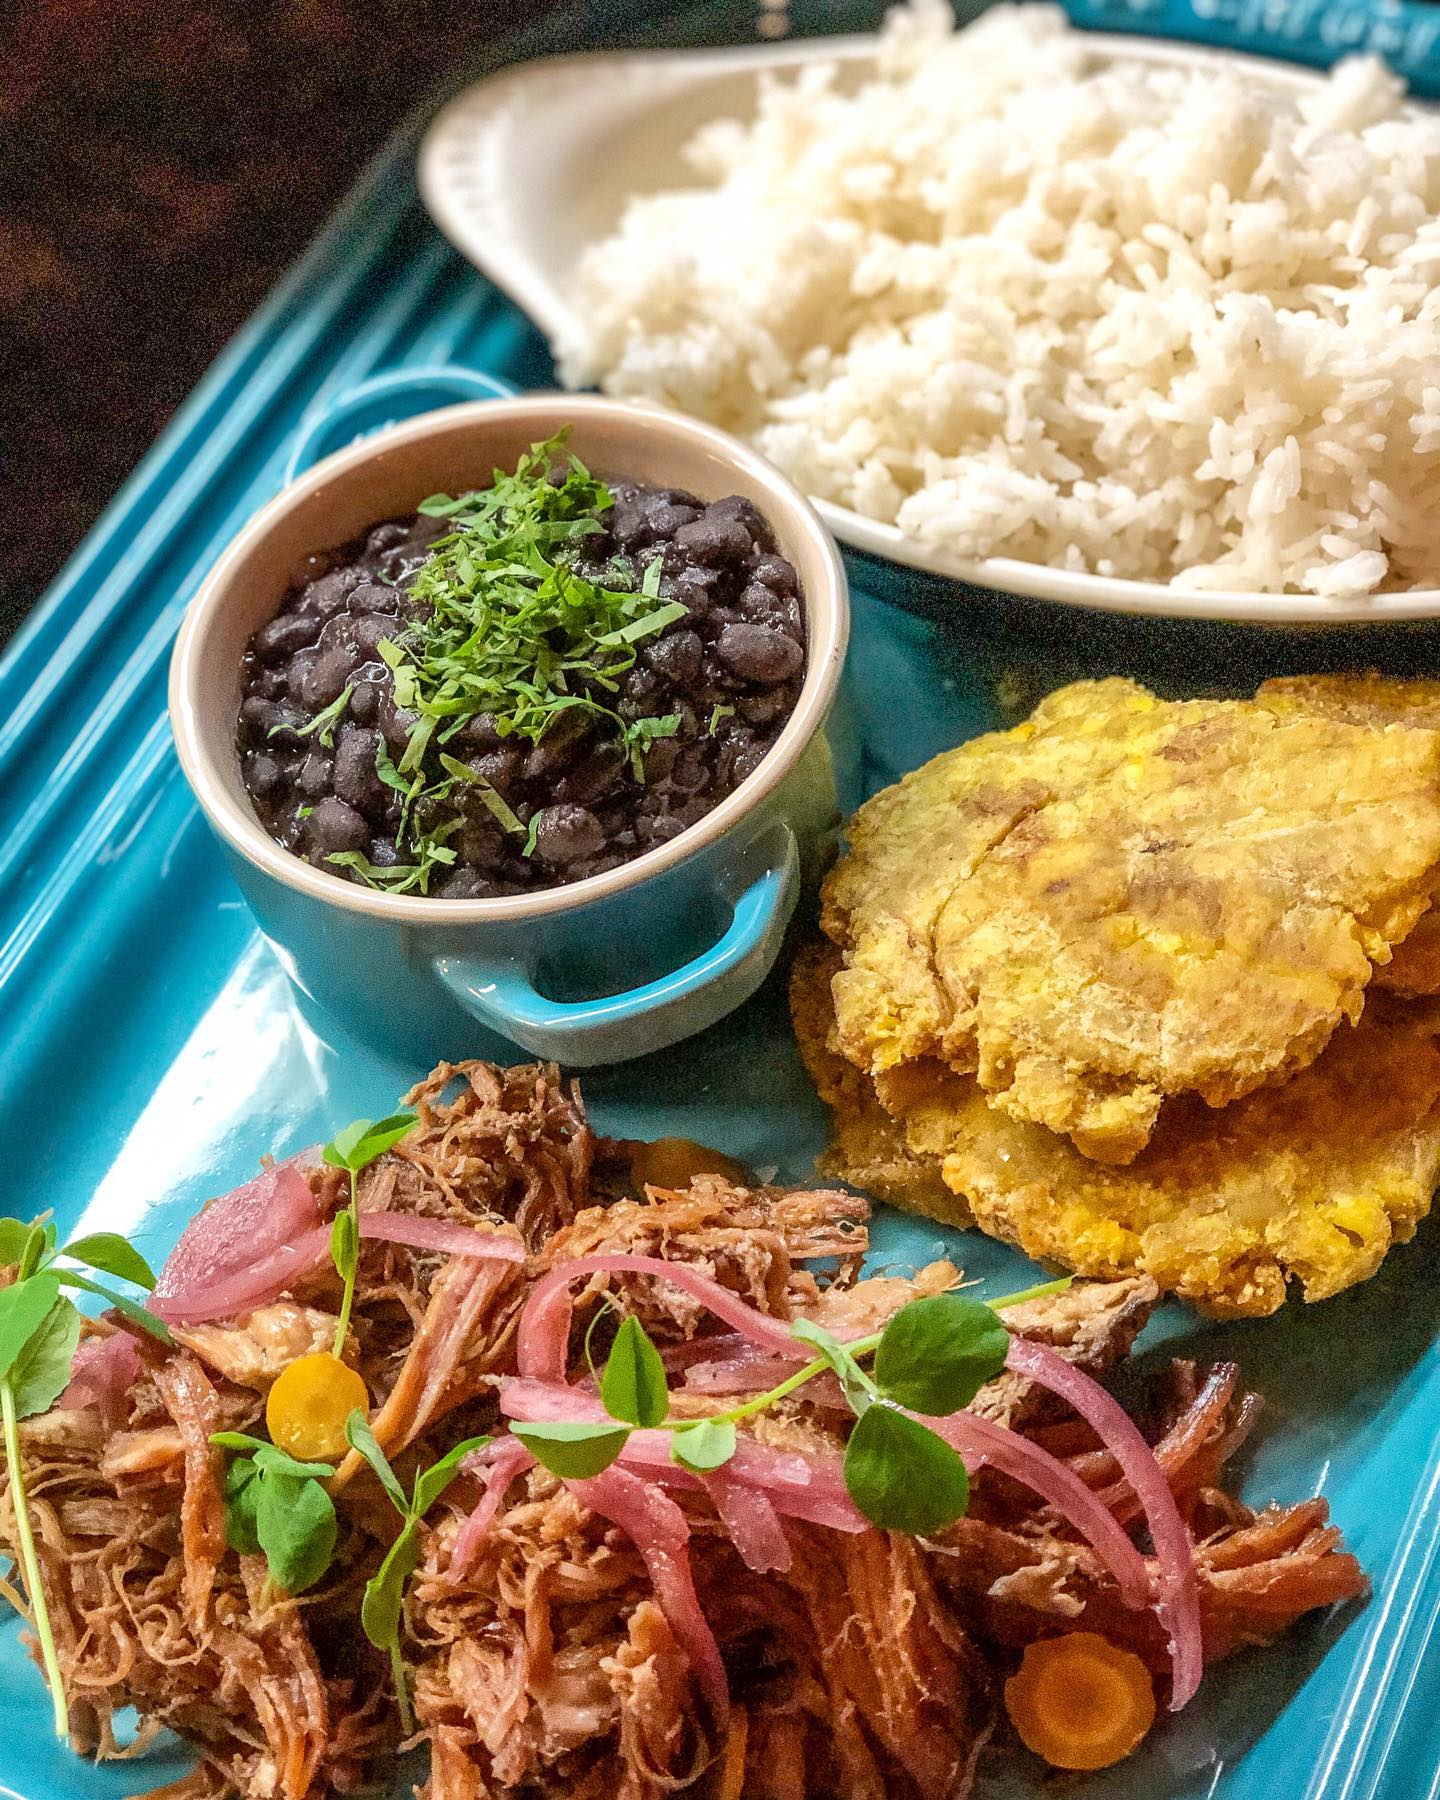 Cuban Food Is on the Horizon for West Ashley